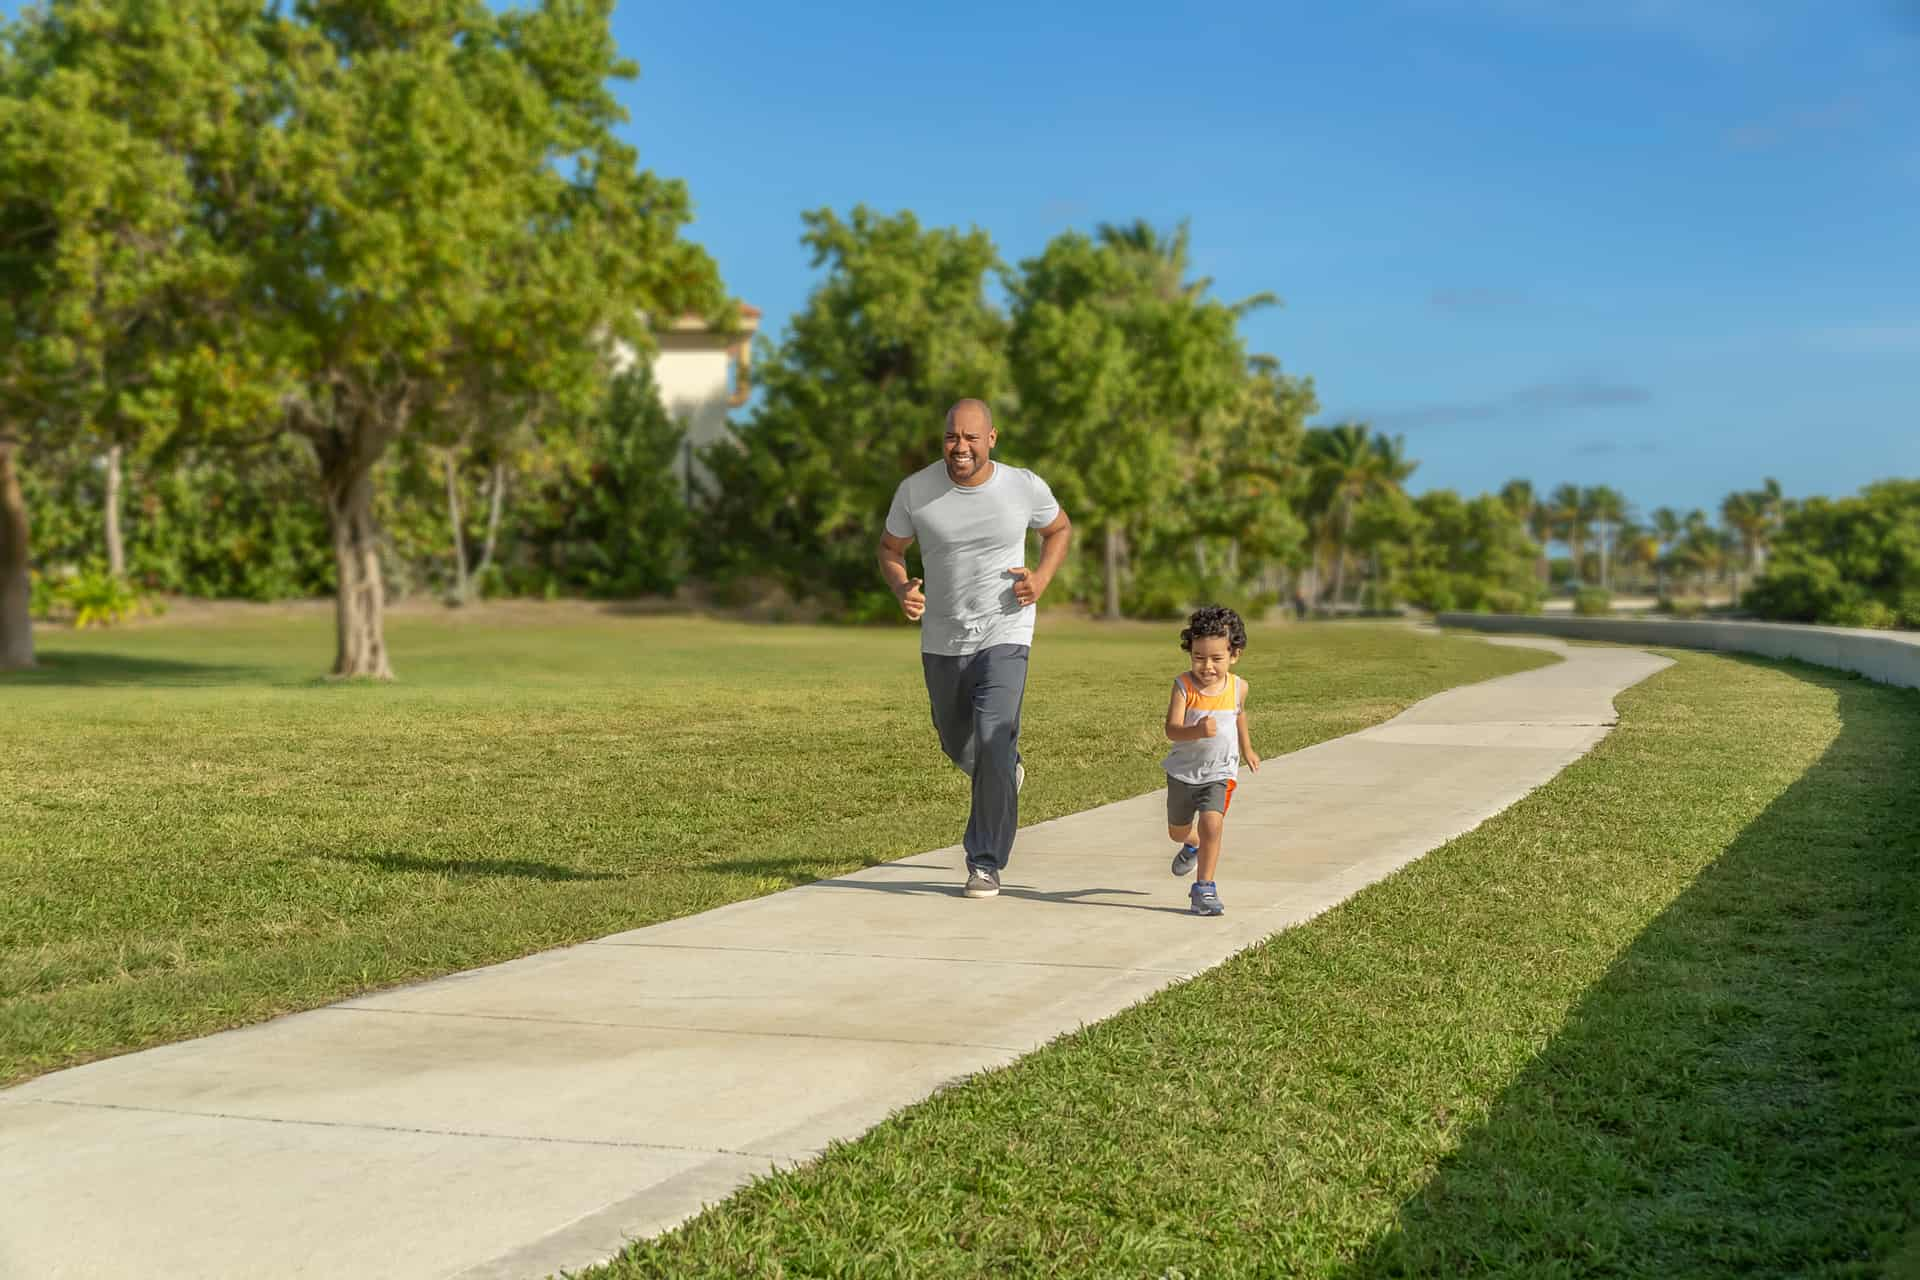 Father & son running at park during nice weather in Rosedale, CA